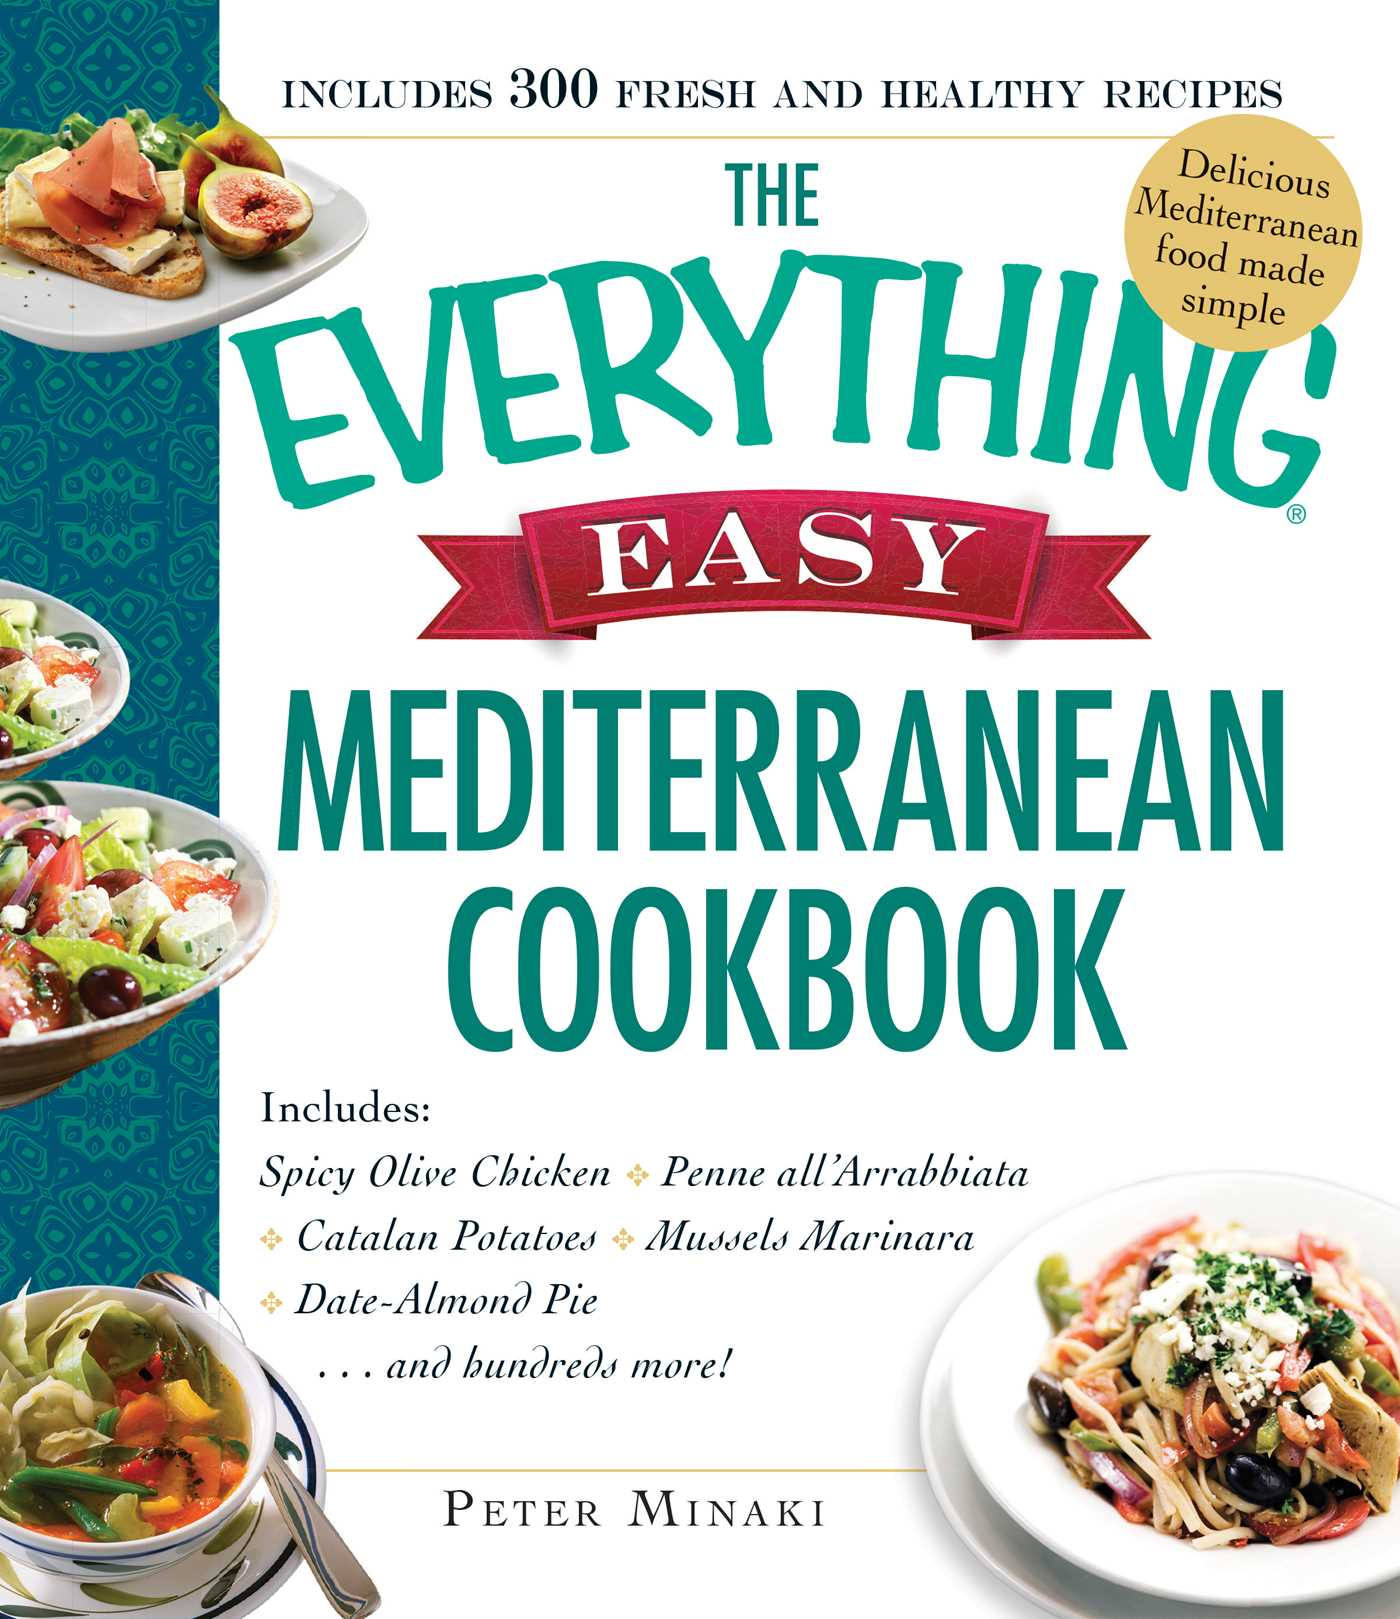 The everything easy mediterranean cookbook ebook by peter minaki book cover image jpg the everything easy mediterranean cookbook forumfinder Images